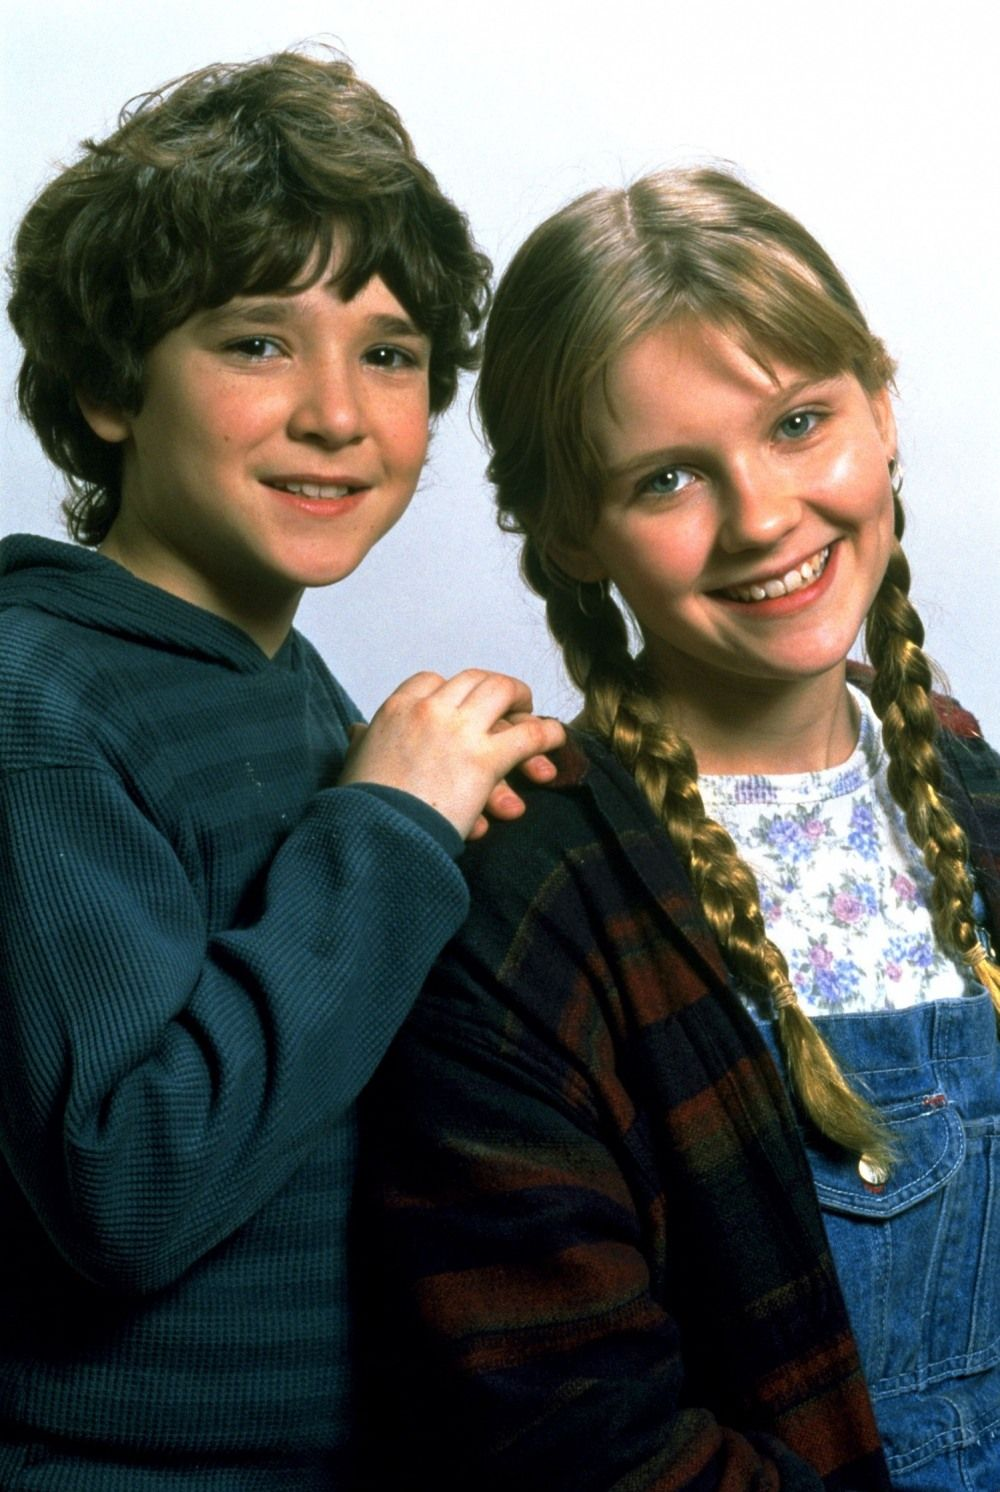 Bradley Pierce and Kirsten Dunst as Peter and Judy Shepherd